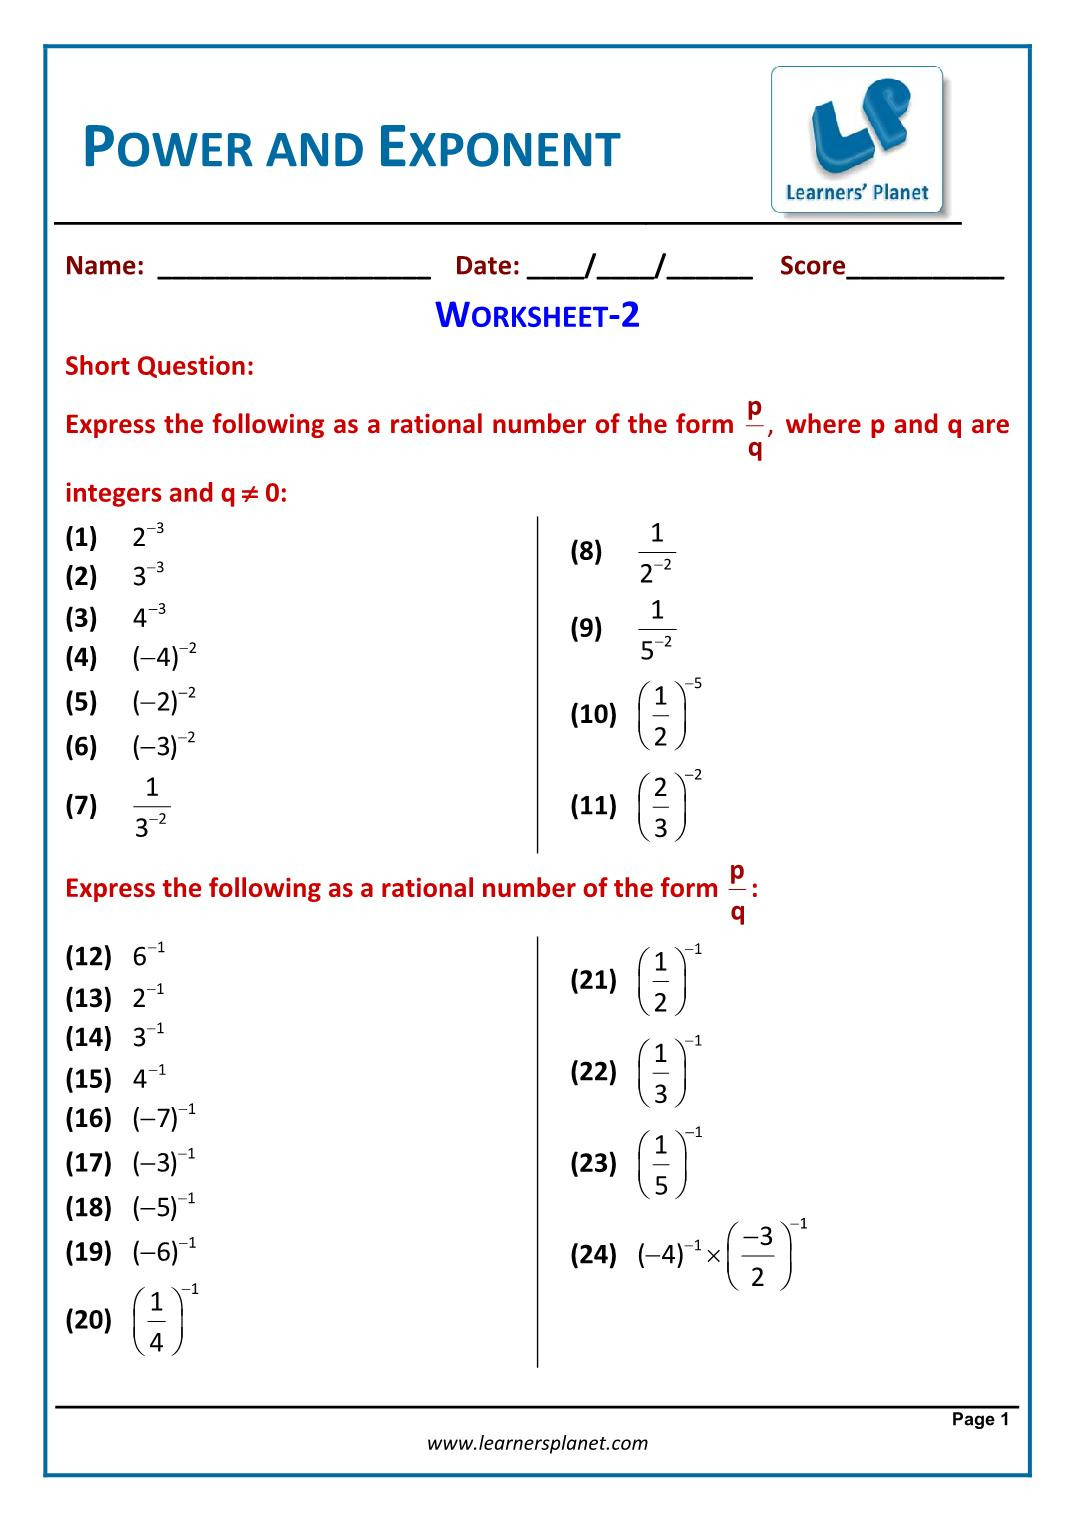 hight resolution of Power-and-Exponent-Workbook-3